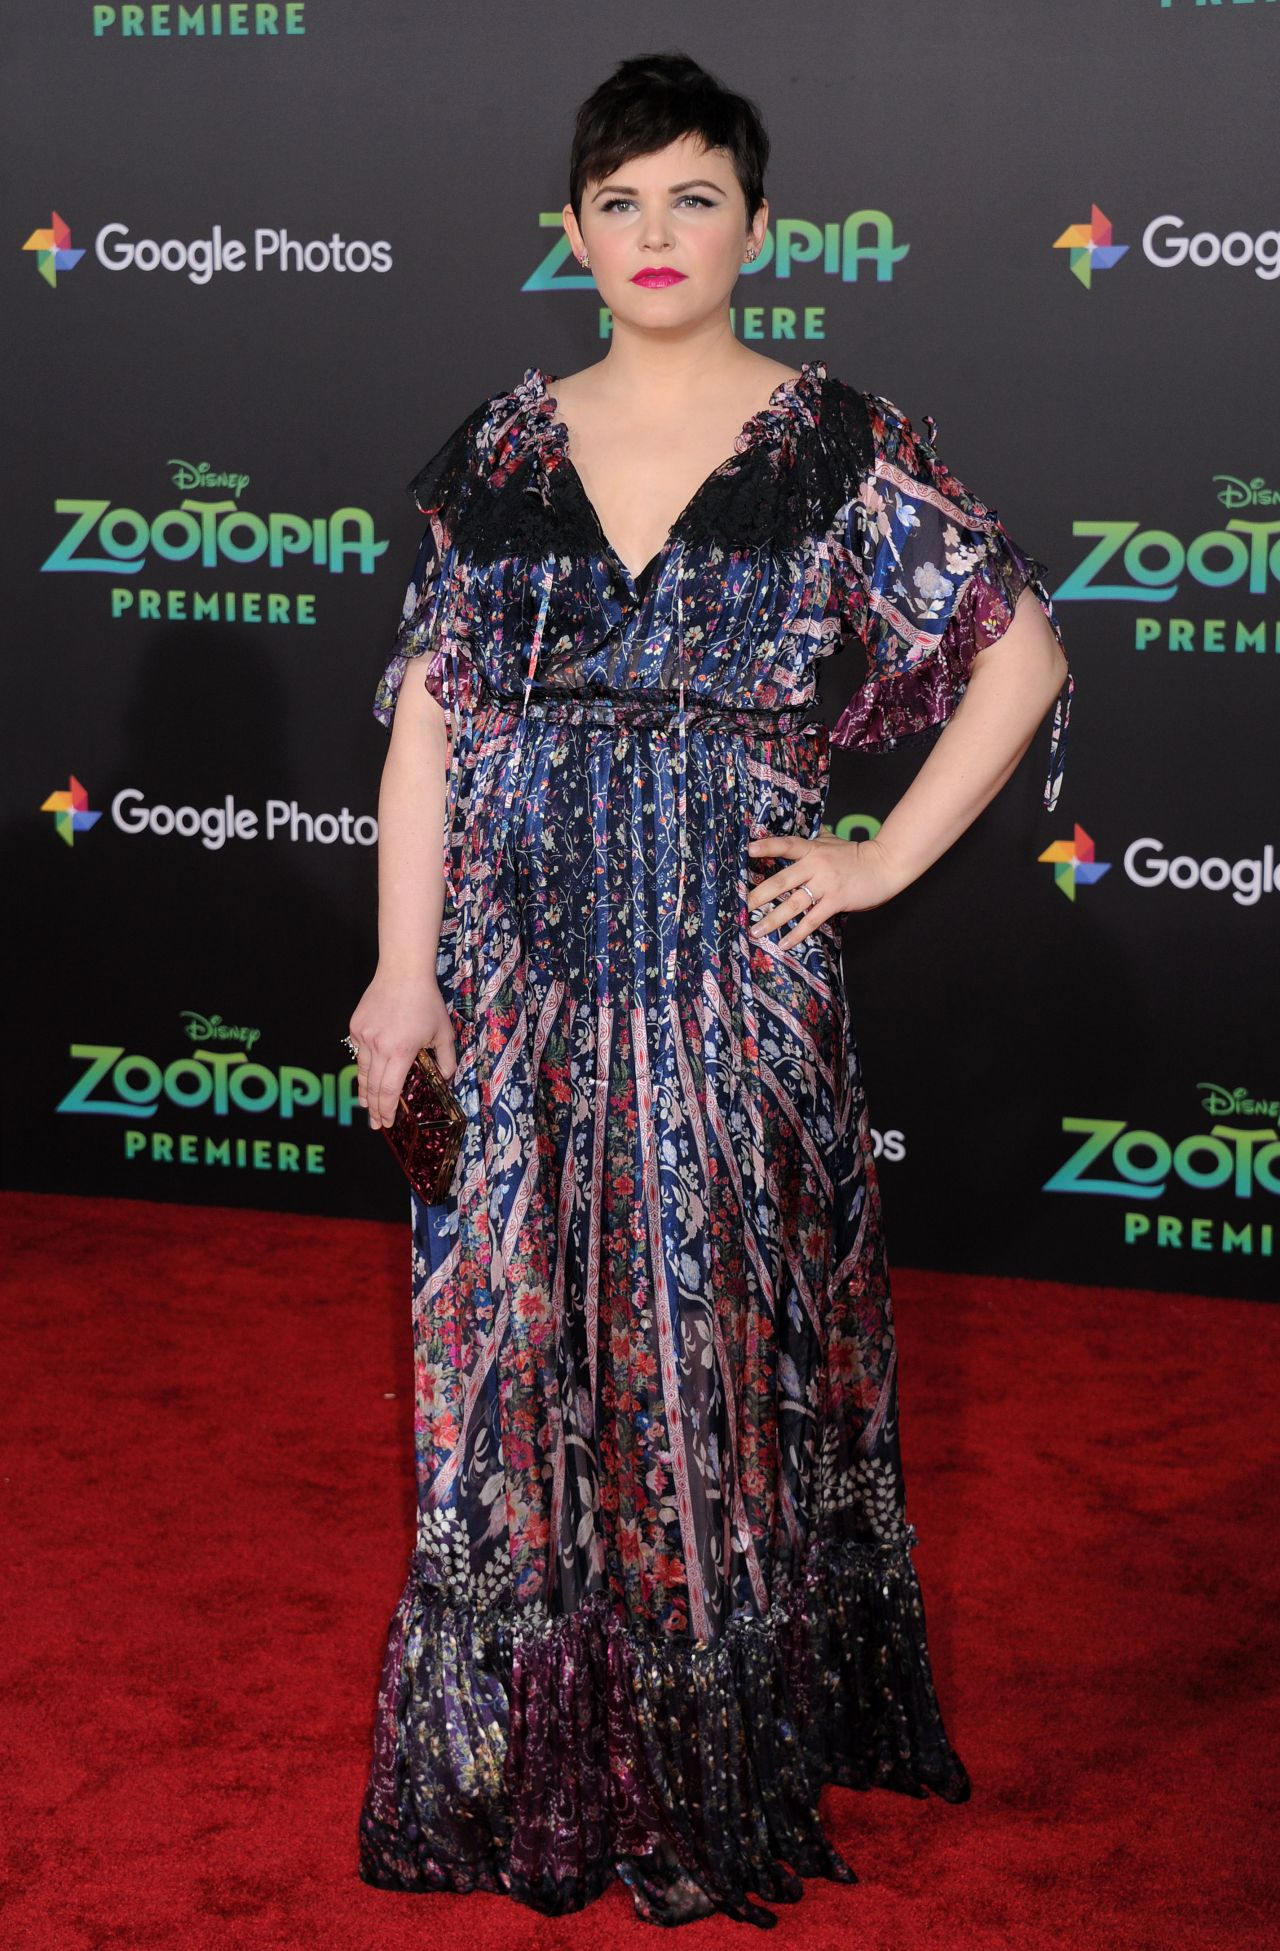 ginnifer-goodwin-zootopia-premiere-in-hollywood-ca-7